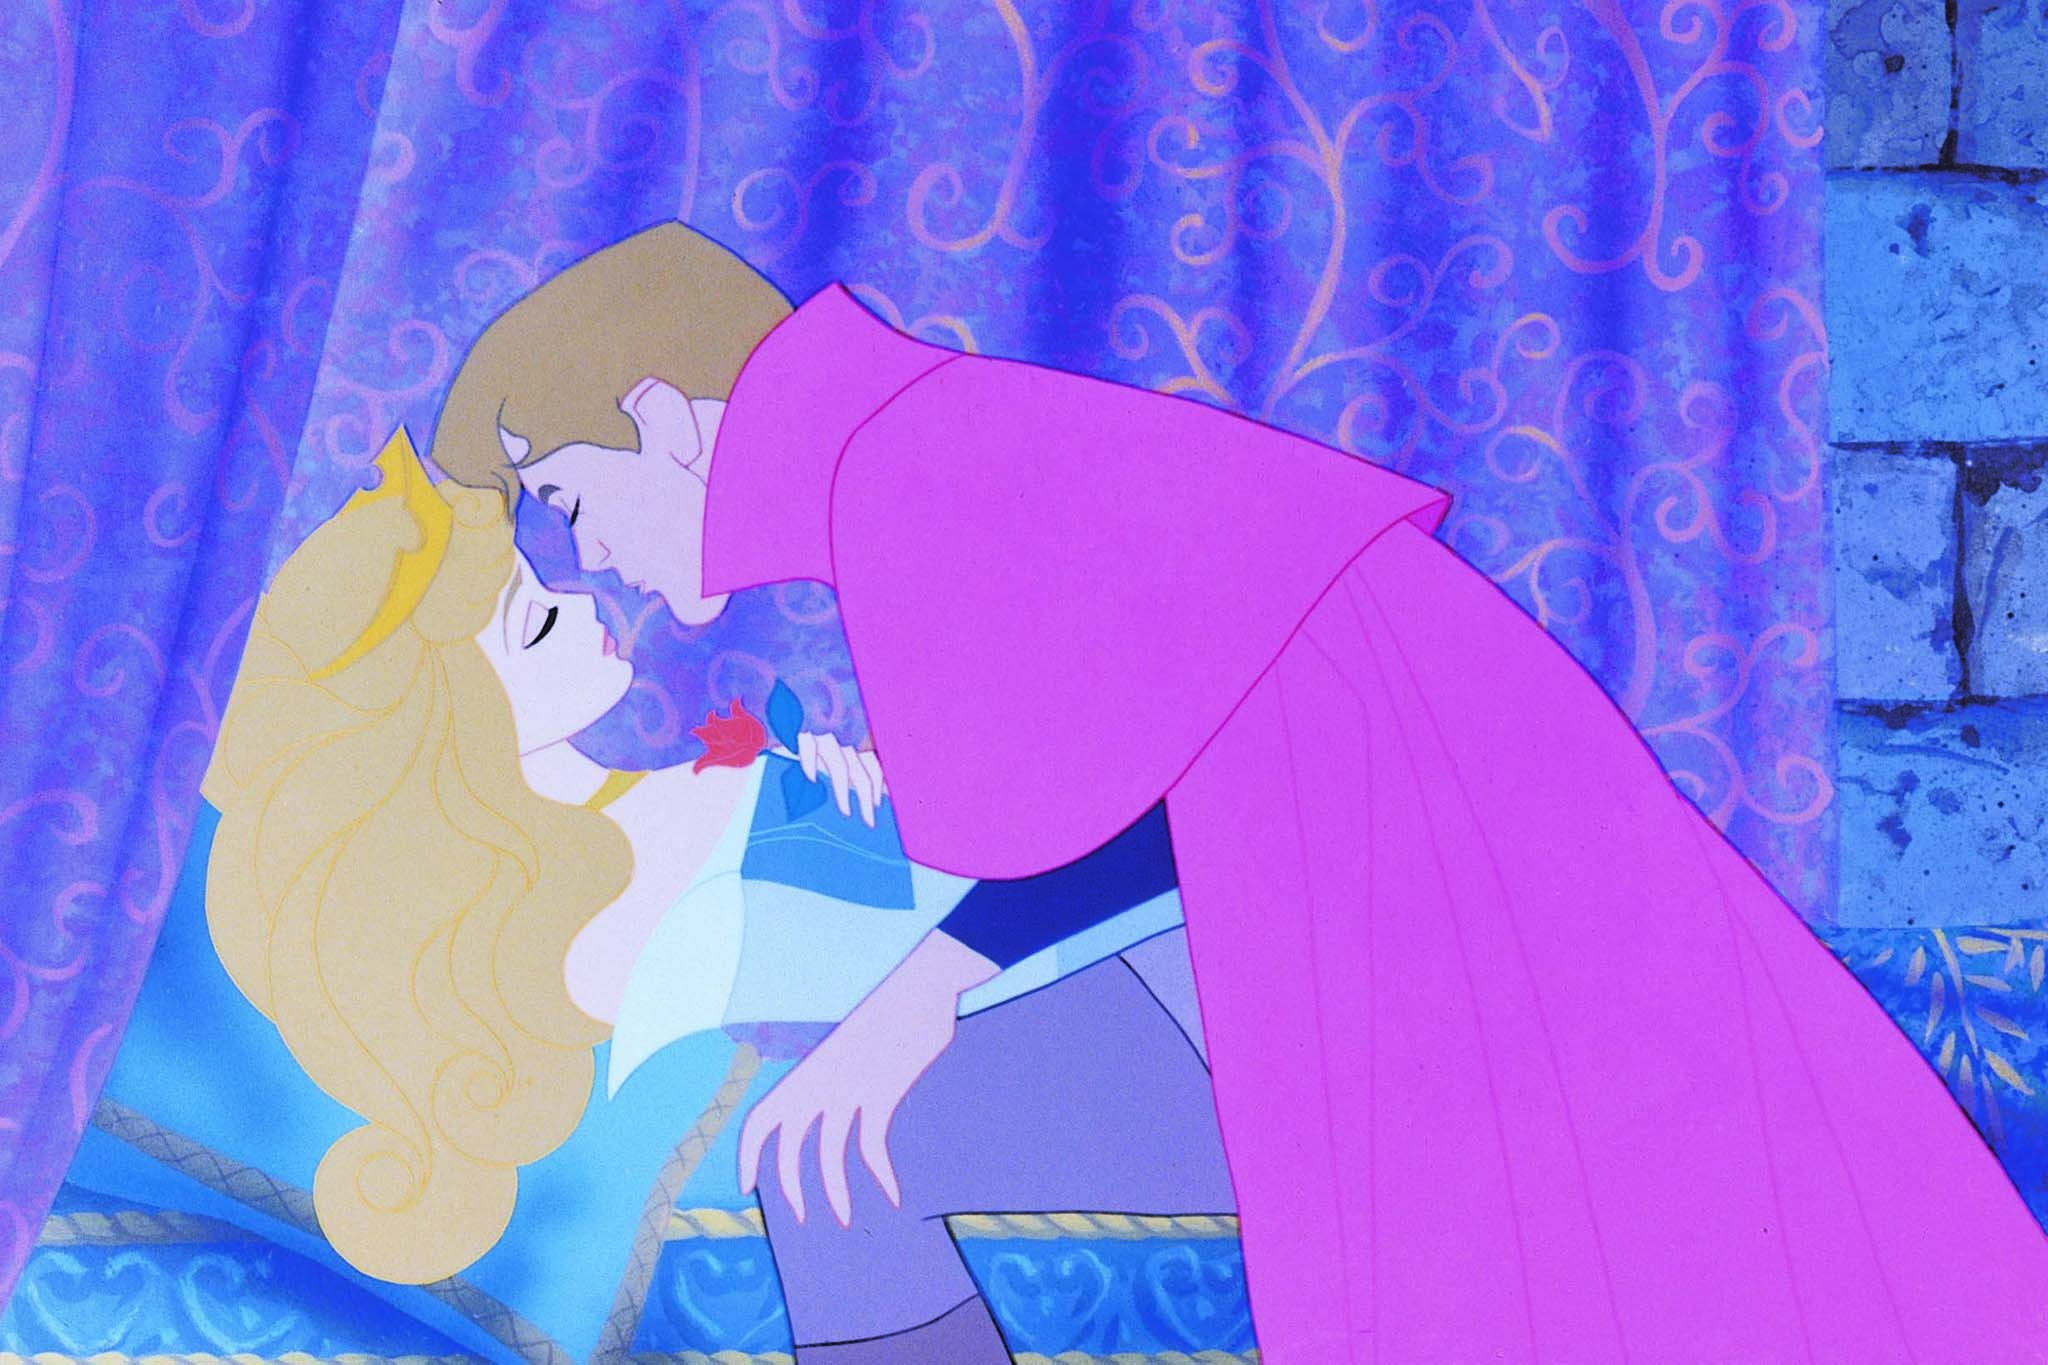 Best Disney films: Sleeping Beauty